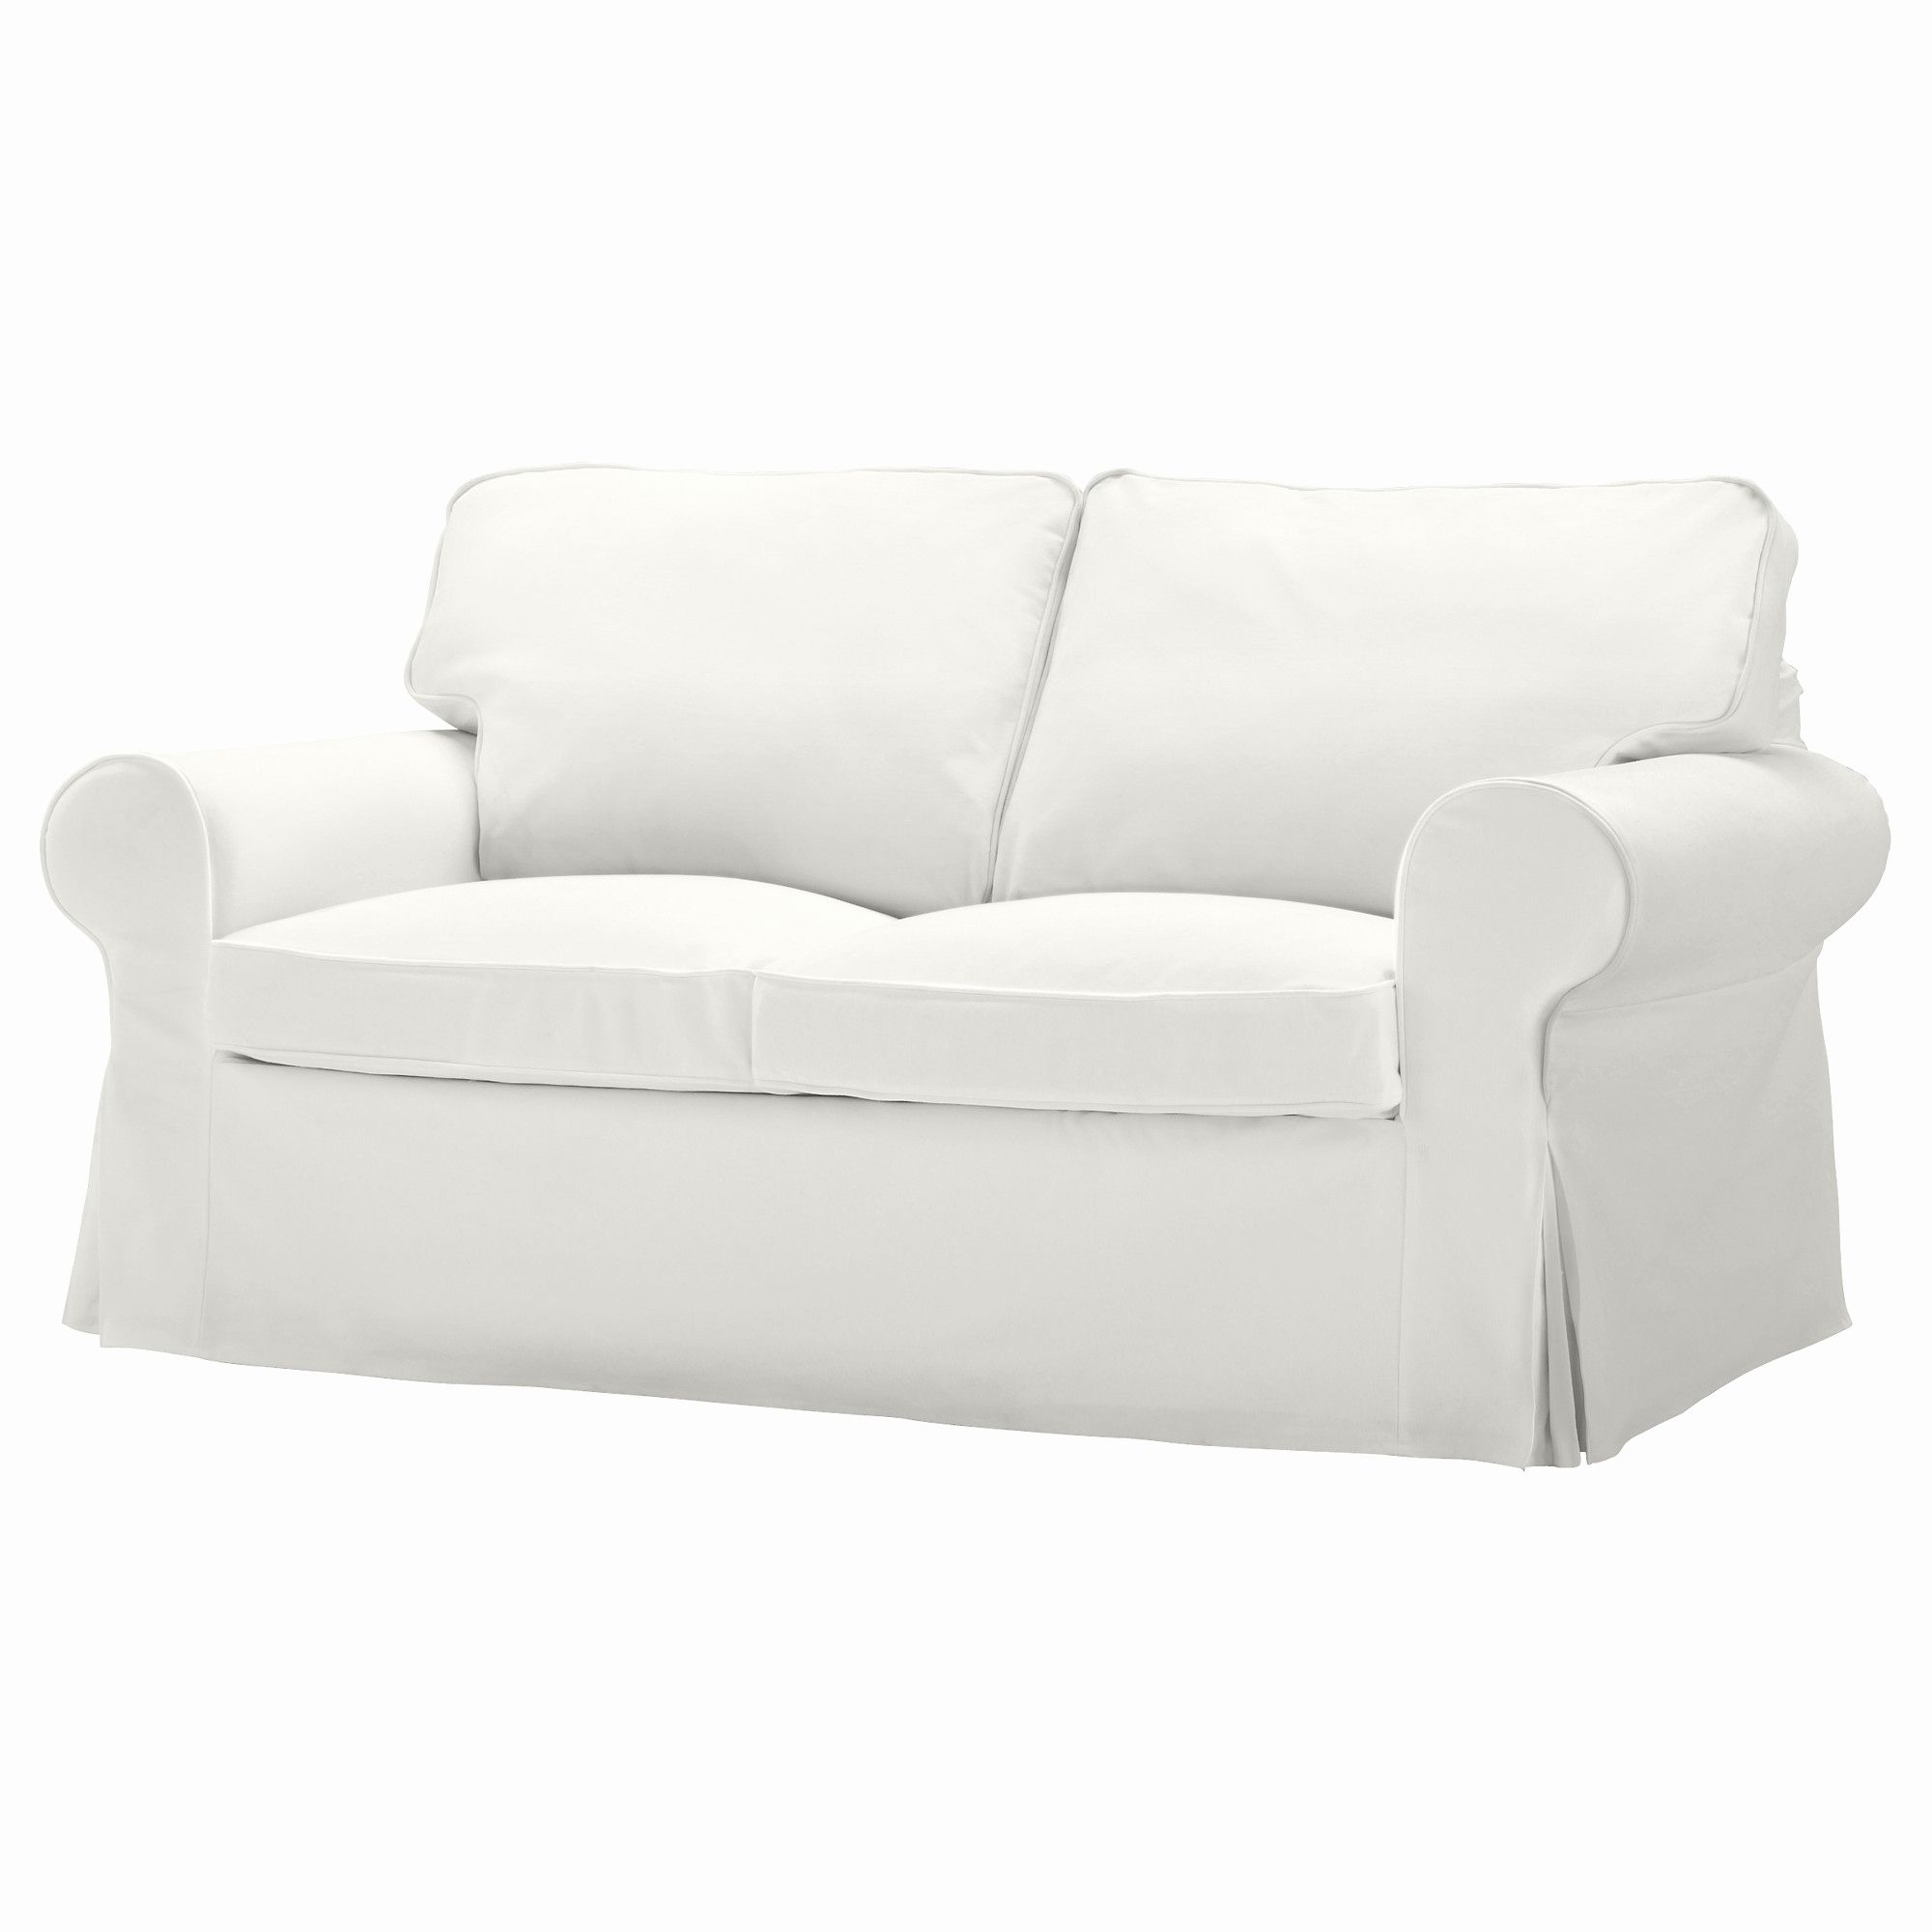 Sofa Covers Ikea. Best Of Sofa Cover Ikea Picture Lovely Ektorp Two Seat  Blekinge Covers